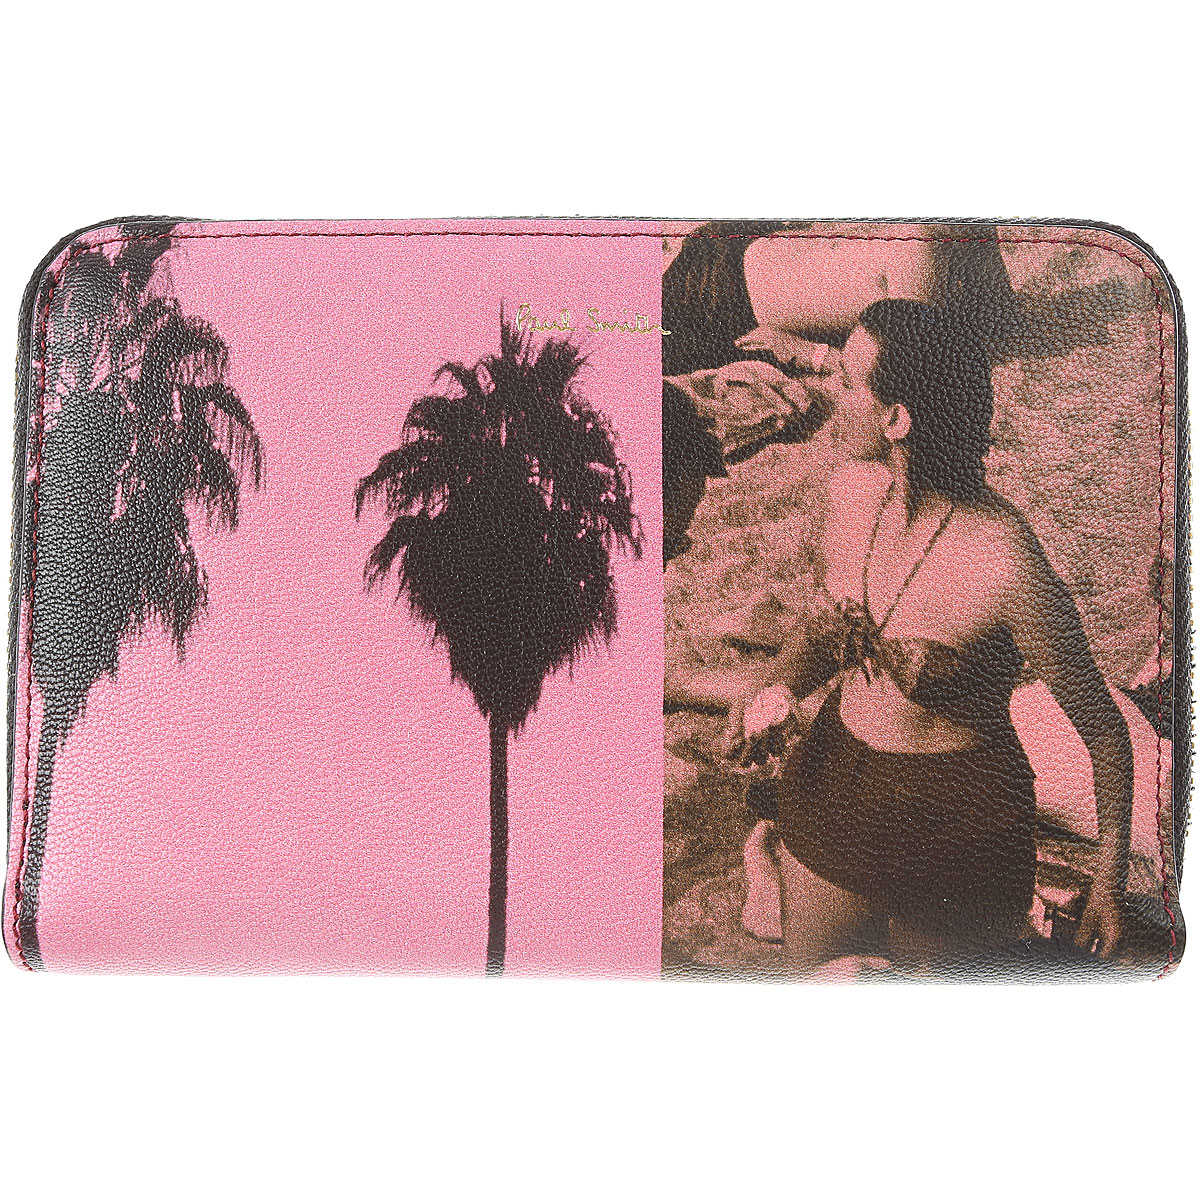 Paul Smith Wallet for Women Pink SE - GOOFASH